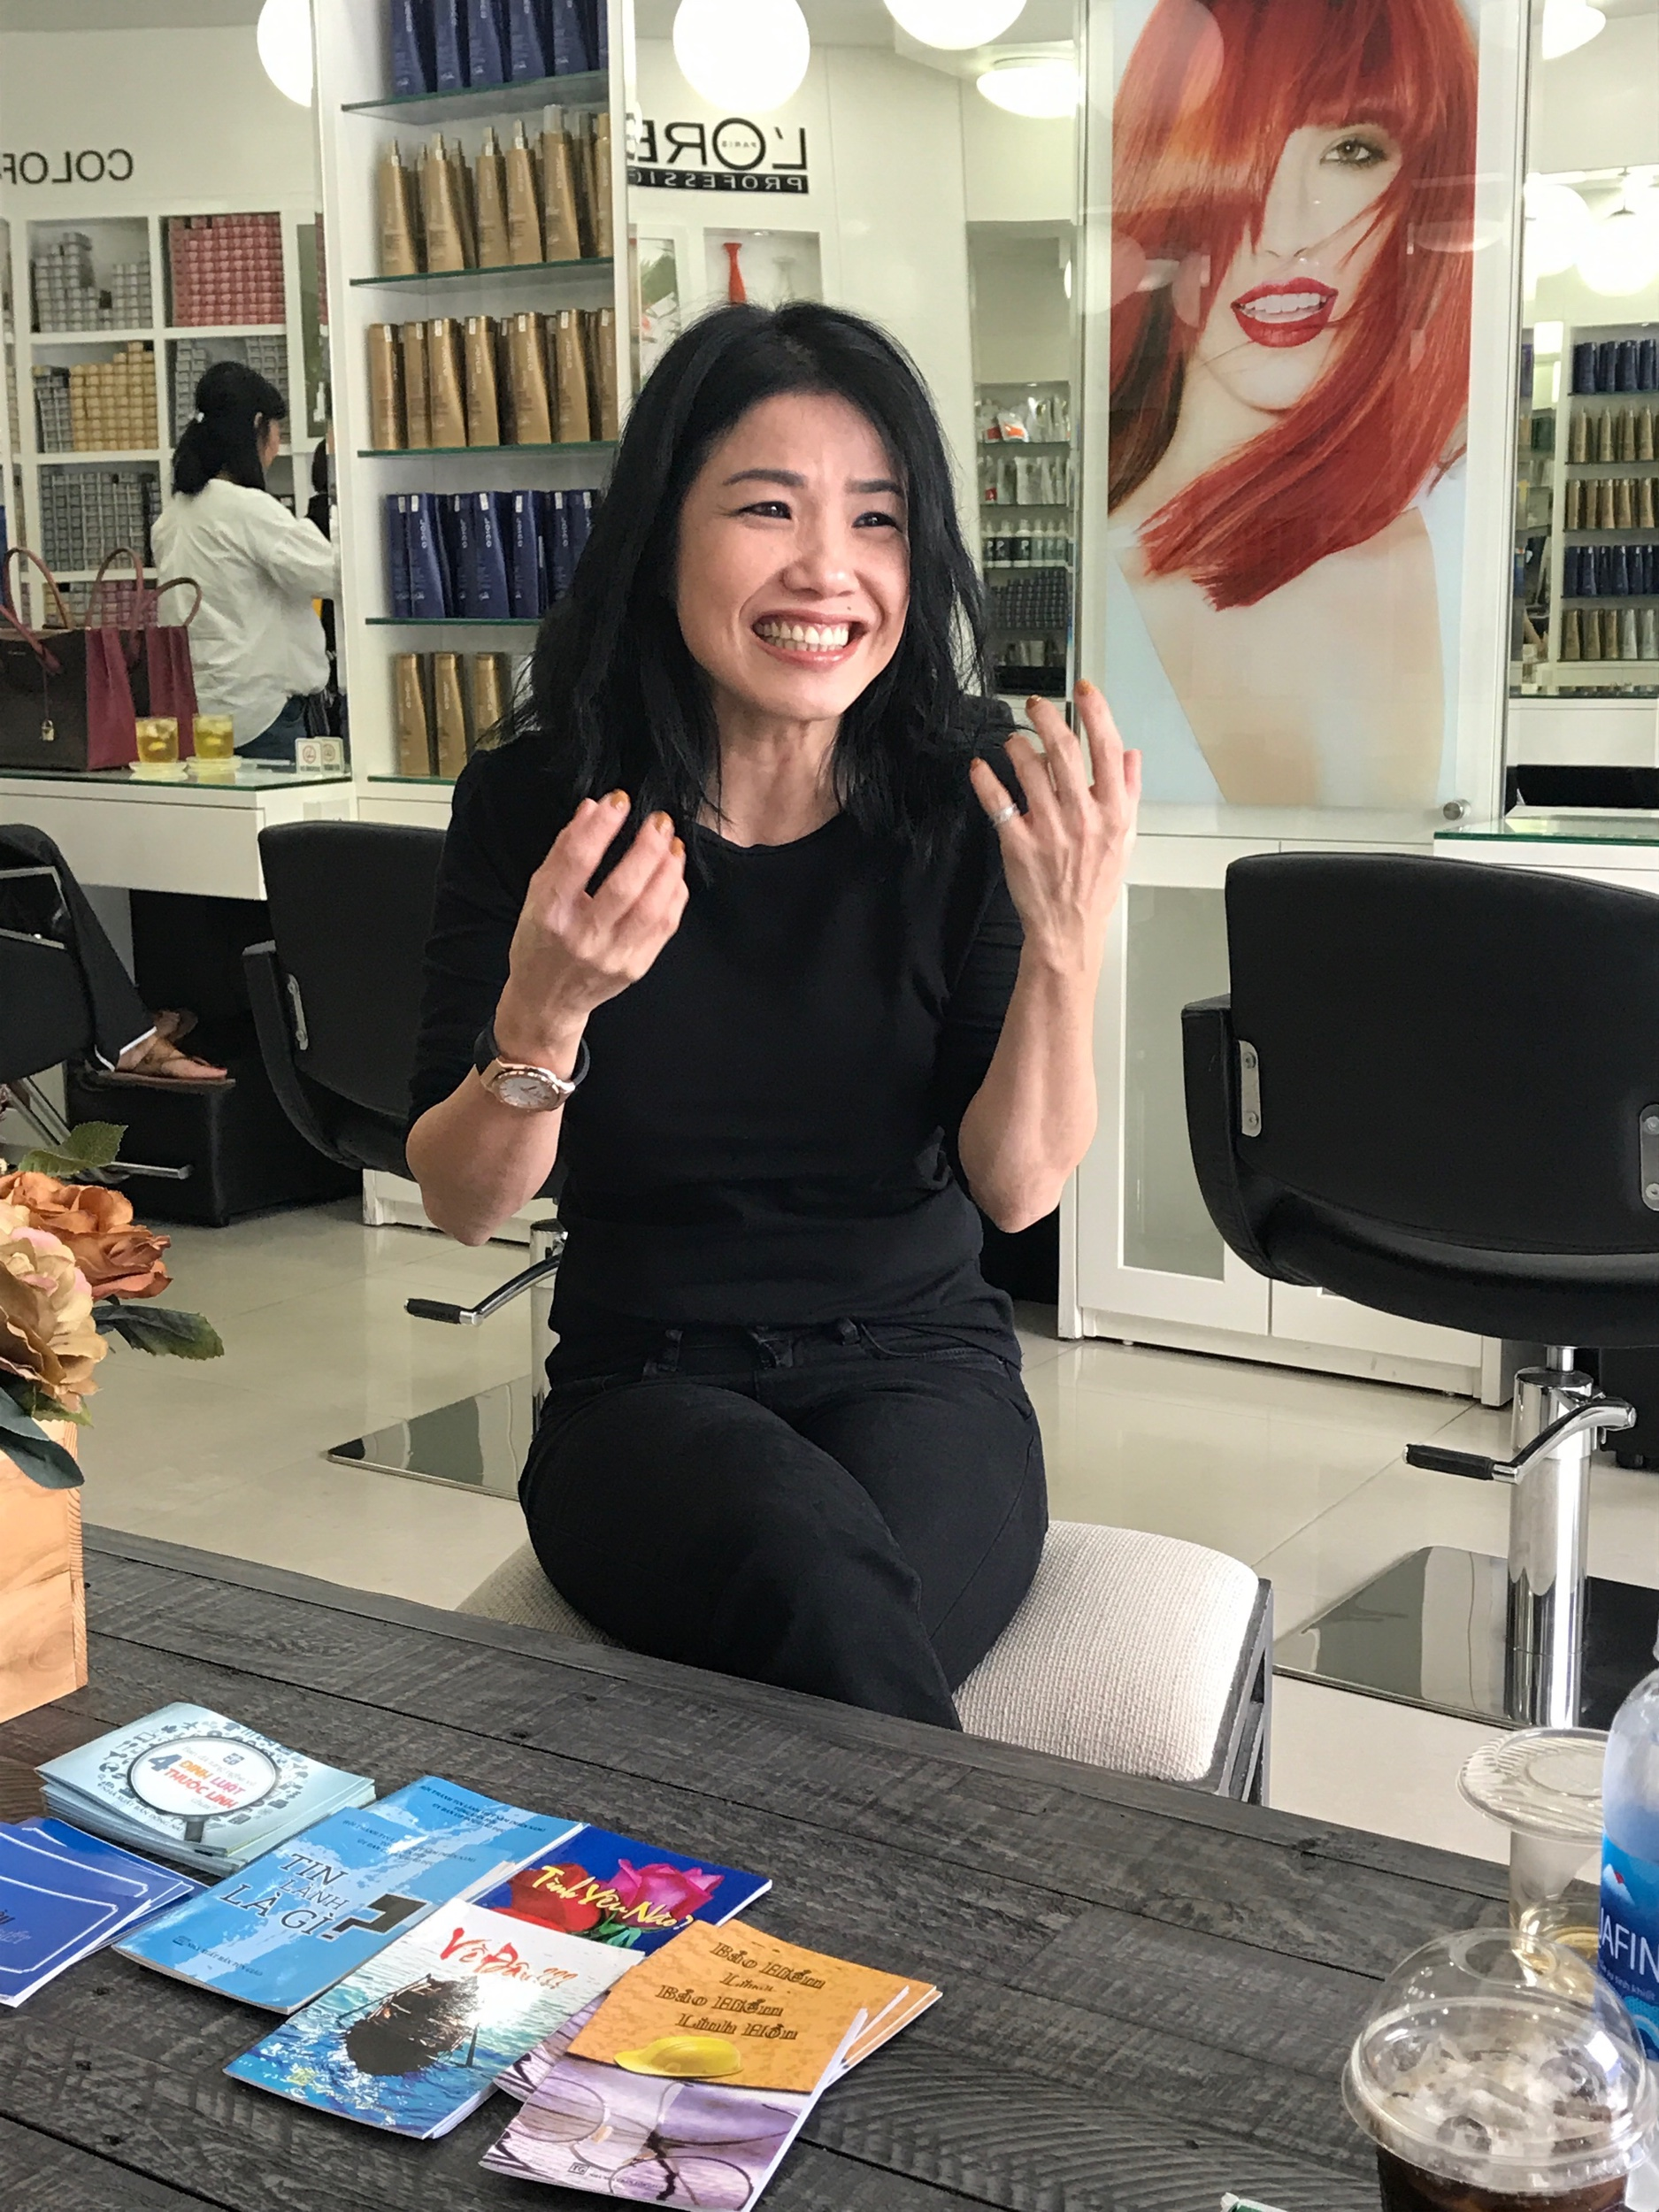 This hairstylist in Saigon has evangelism tracks in her studio and is passionate about sharing God's love with her clients.